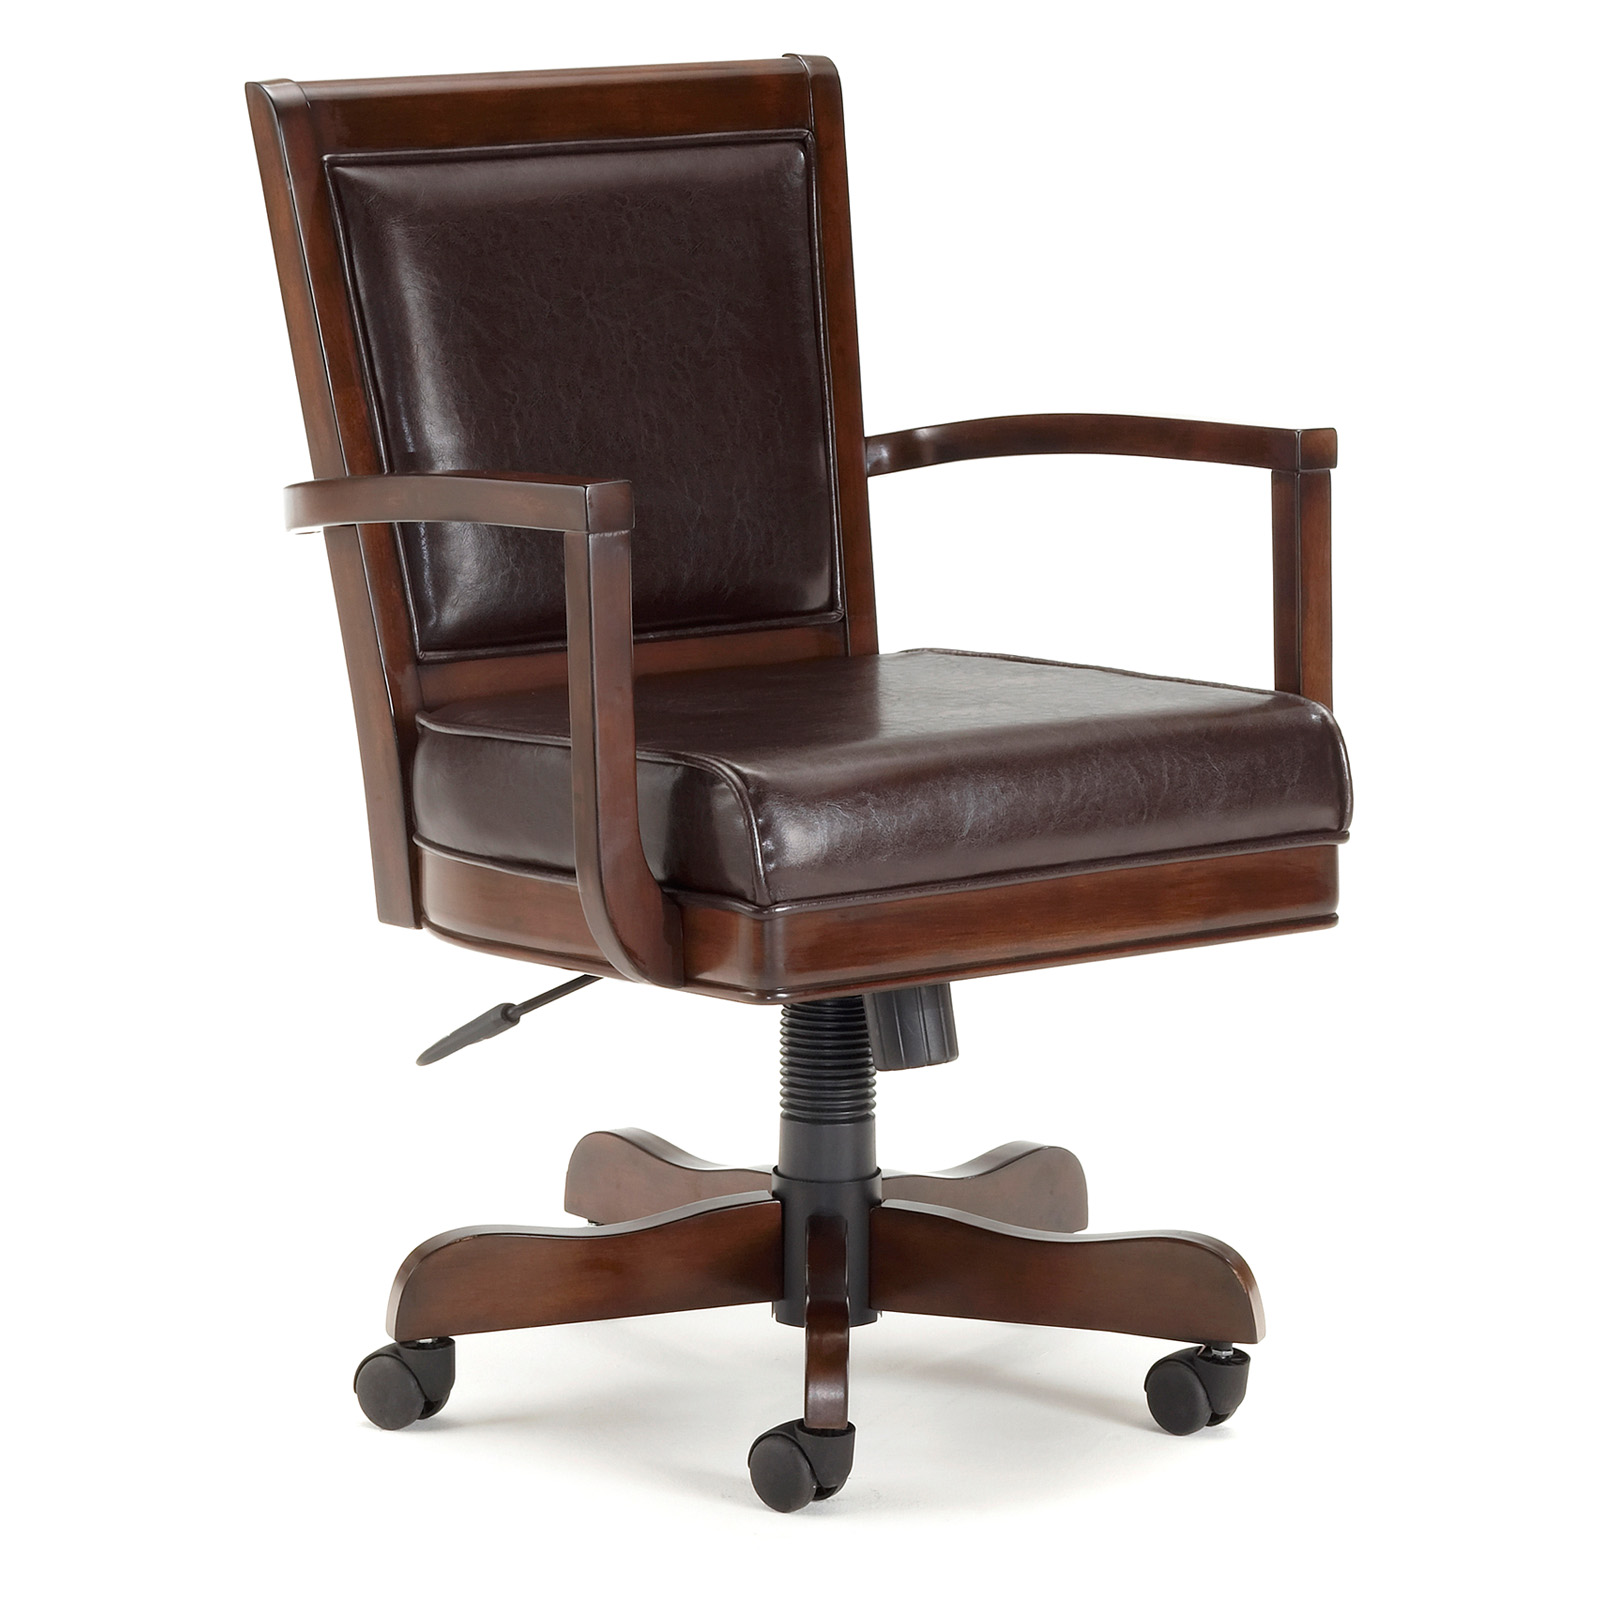 Attirant Hillsdale Ambassador Office Chair